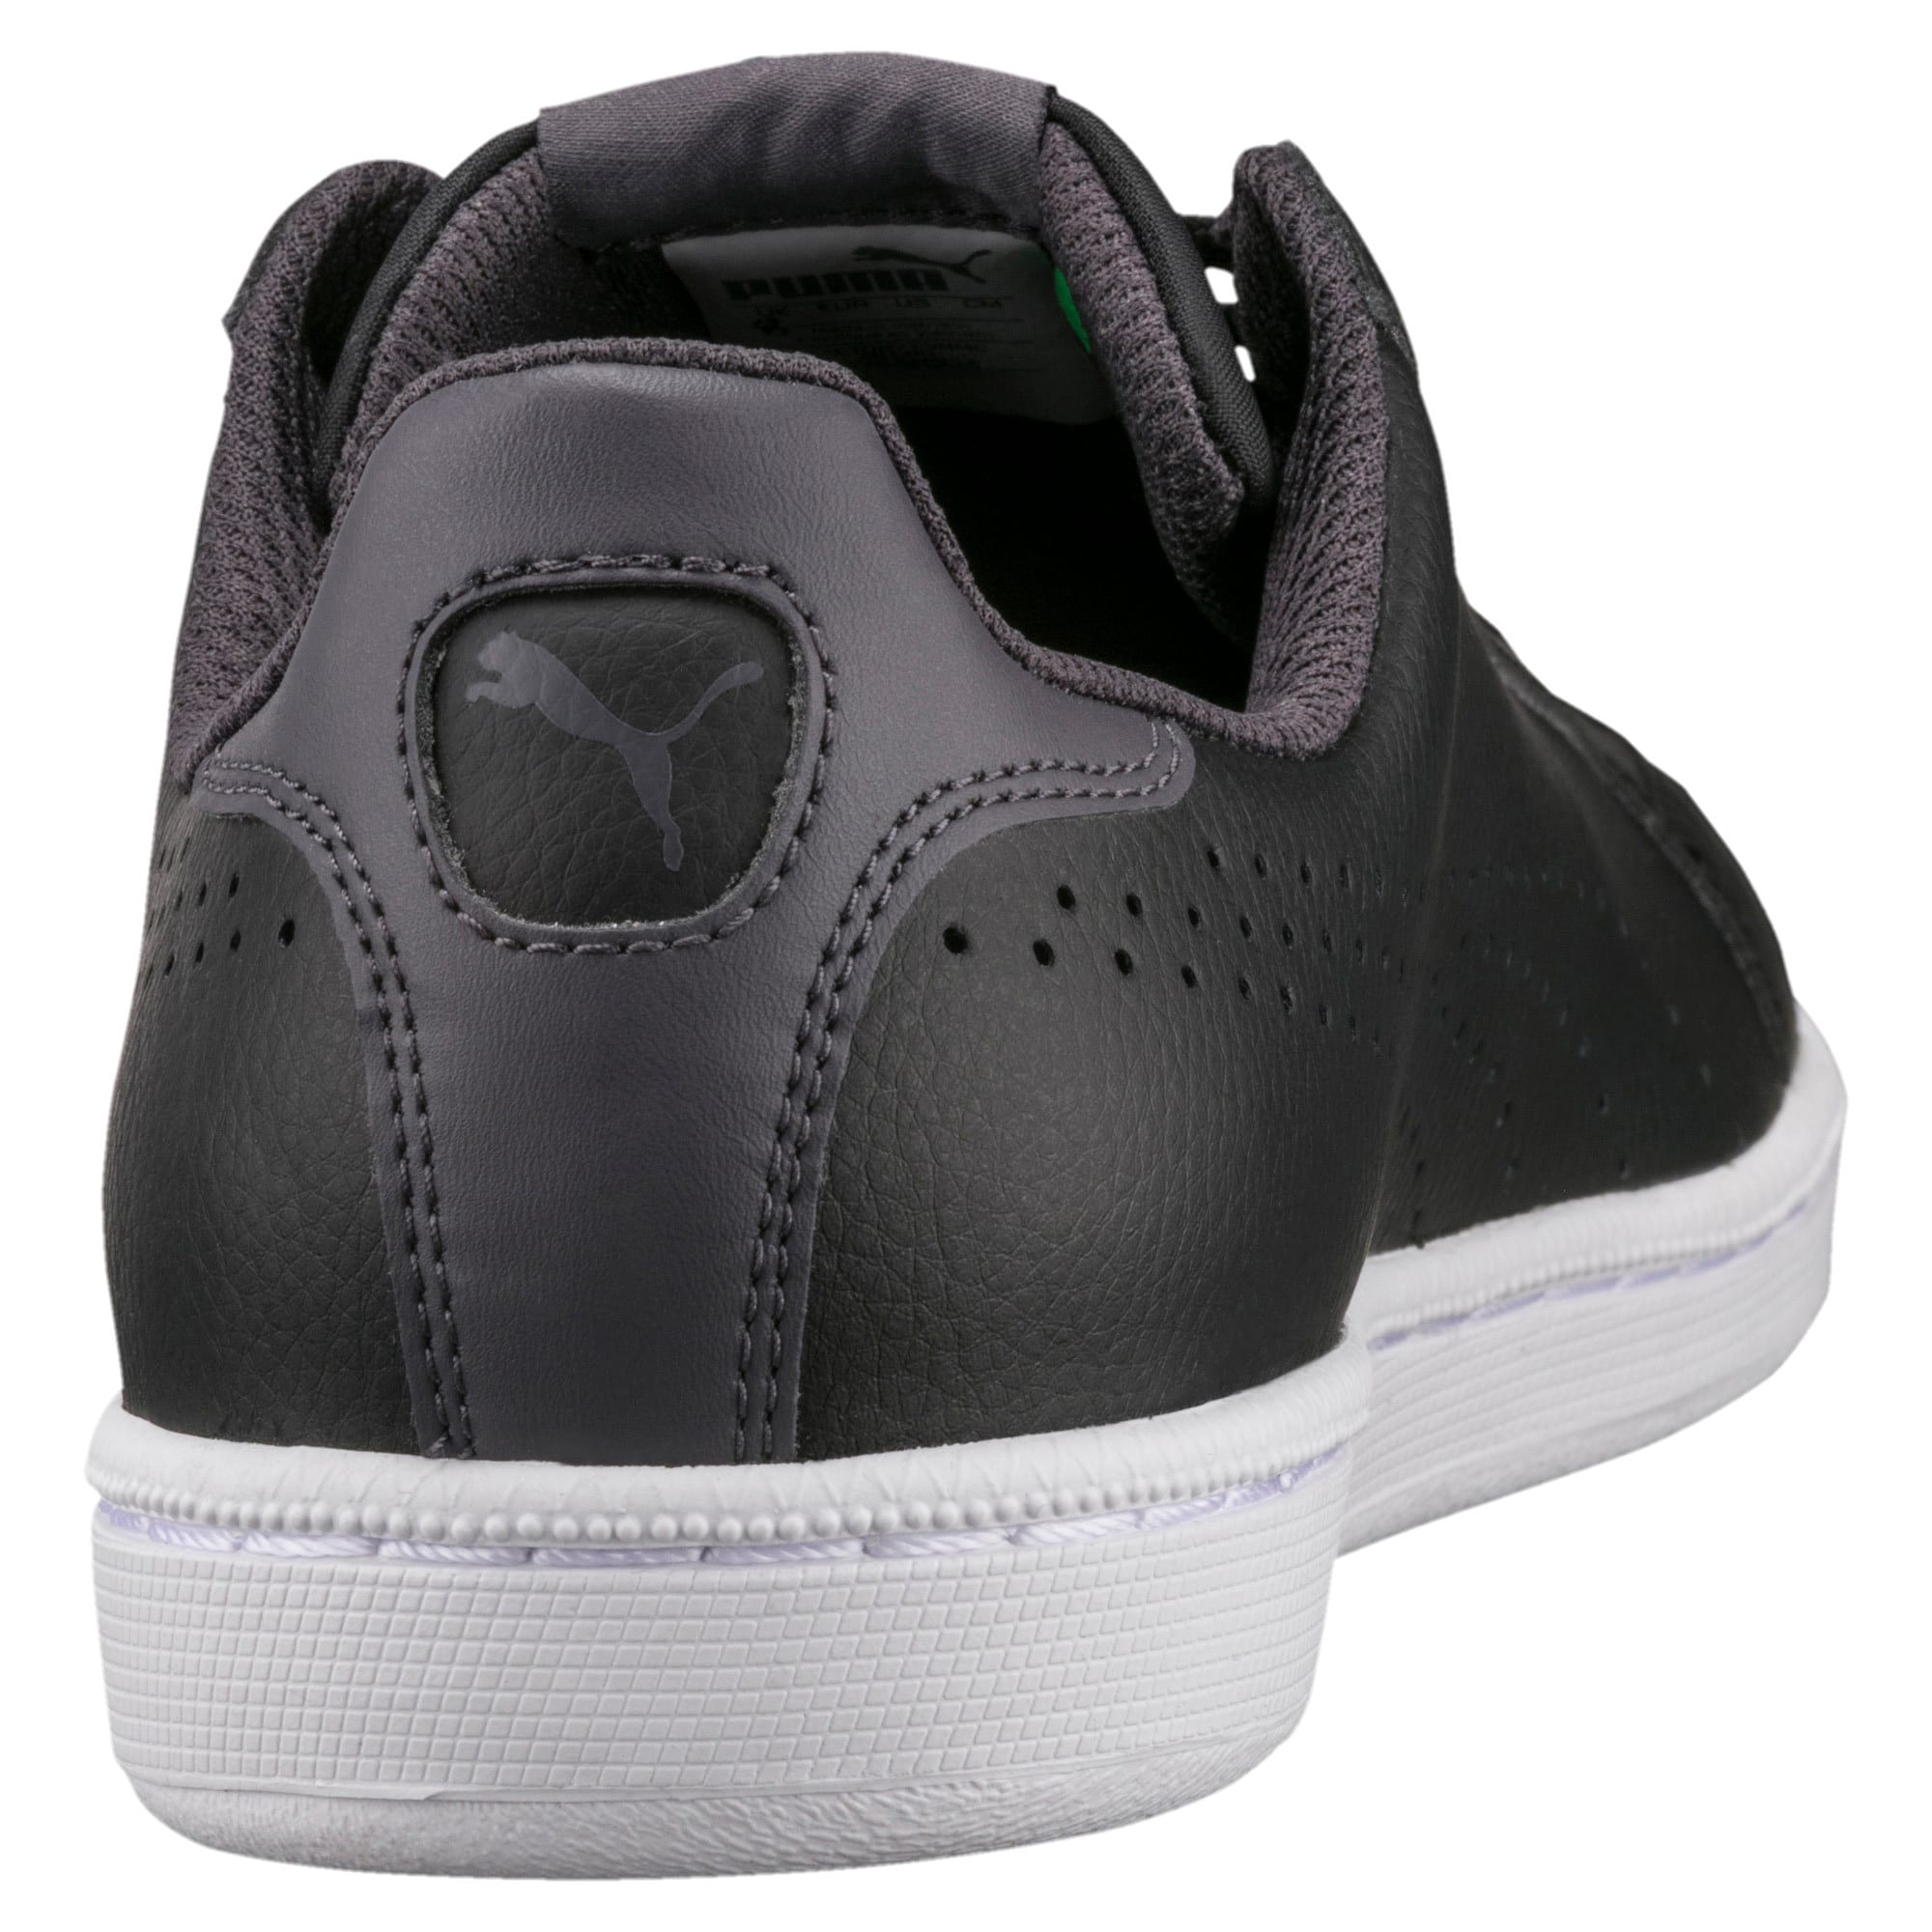 Thumbnail 3 of Smash Perf Trainers, Puma Black-Periscope, medium-IND